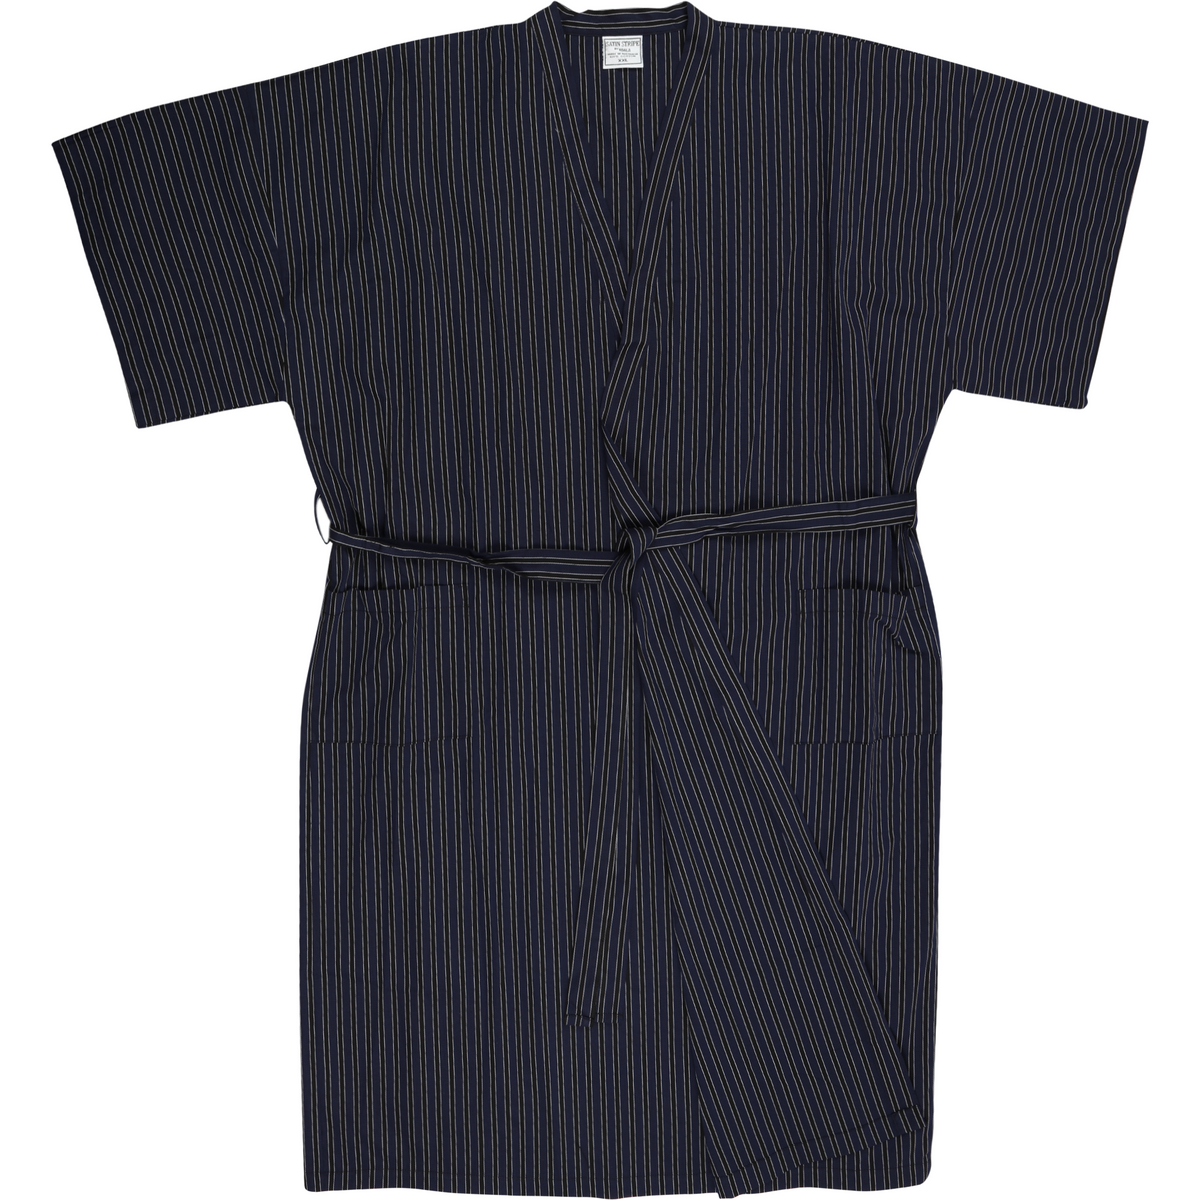 Koala Night Gown in Navy - Ron Bennett Big Men's Clothing - 1